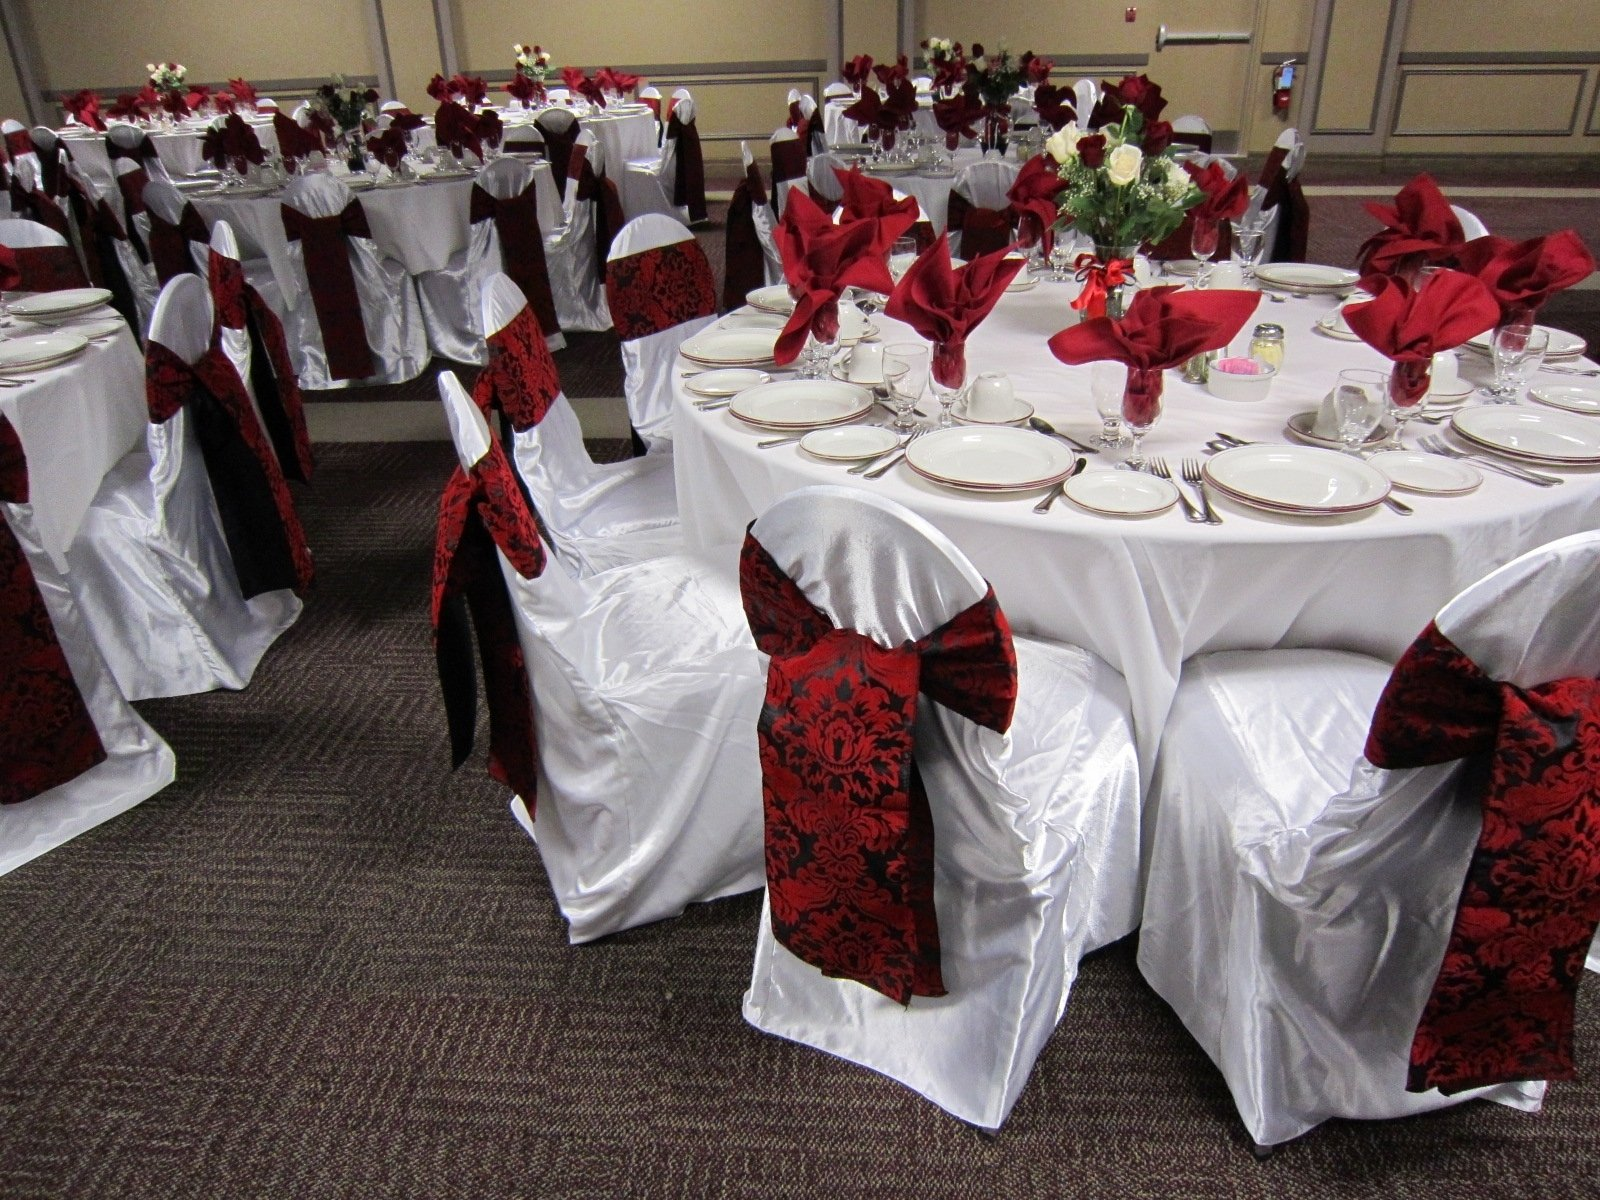 10 Spectacular Red And White Wedding Ideas purple and red wedding theme wedding ideas uxjj 1 2020